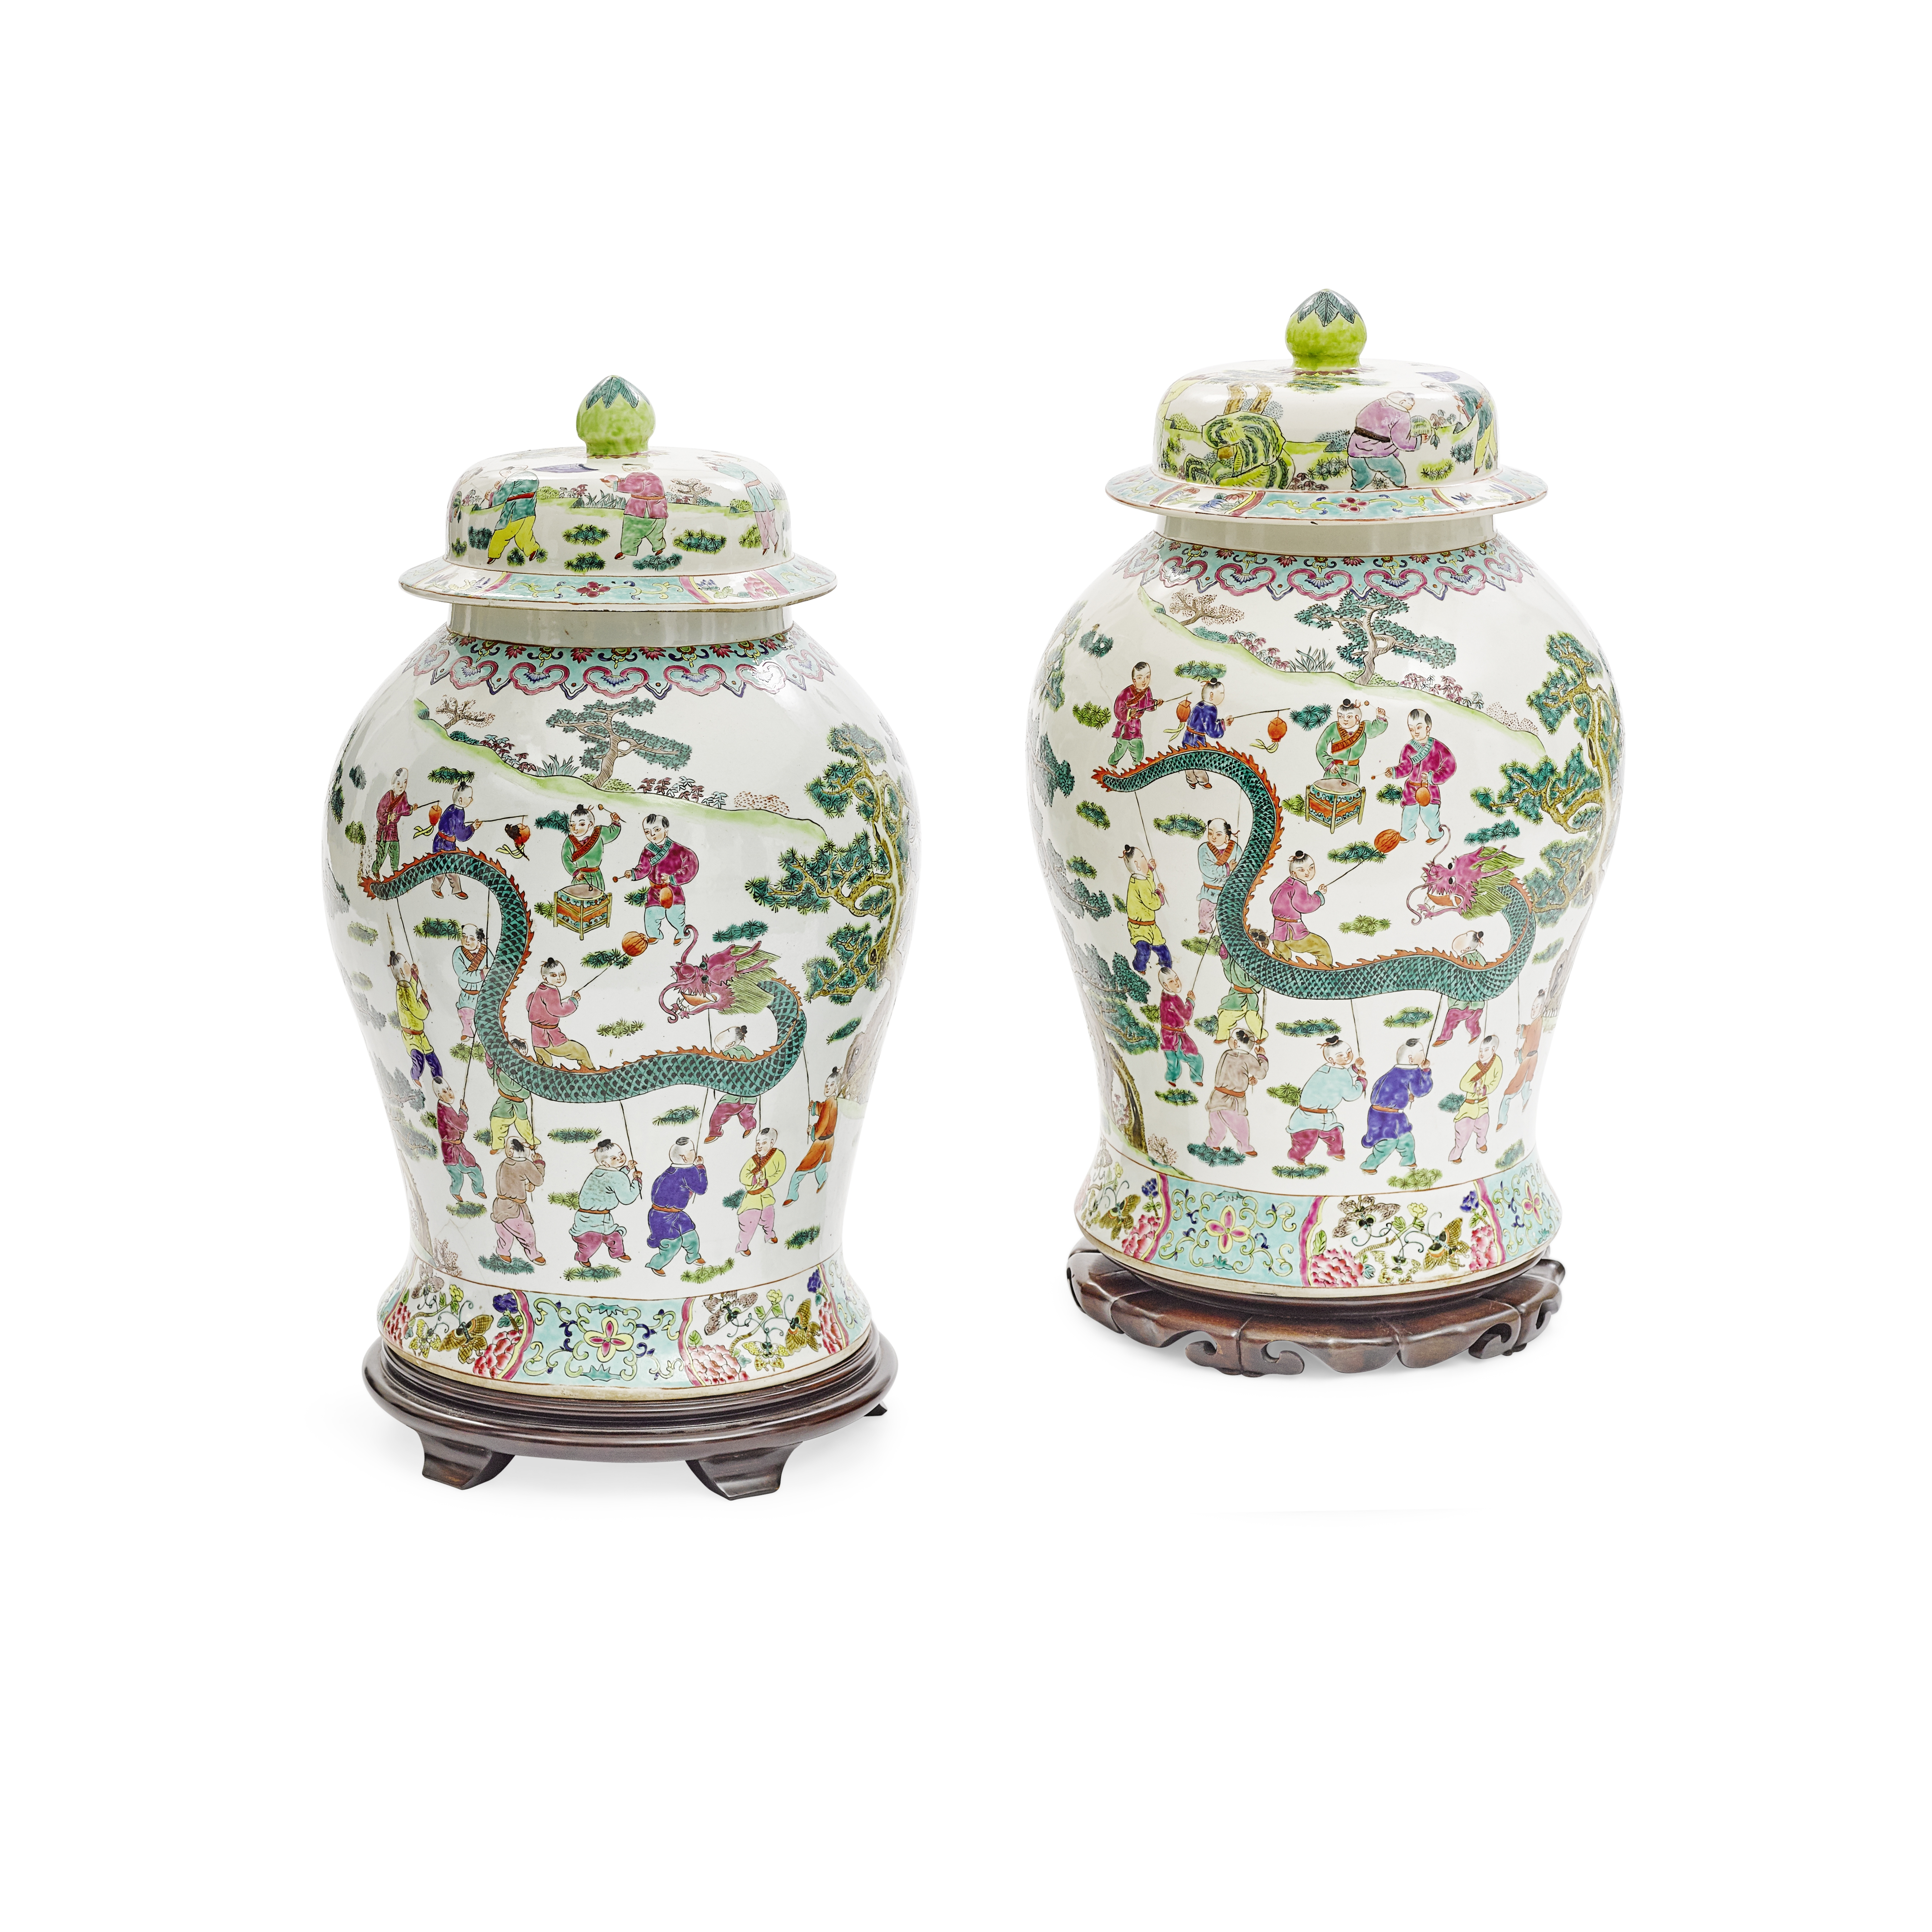 Lot 251 - A pair of Chinese famille rose porcelain ginger jars